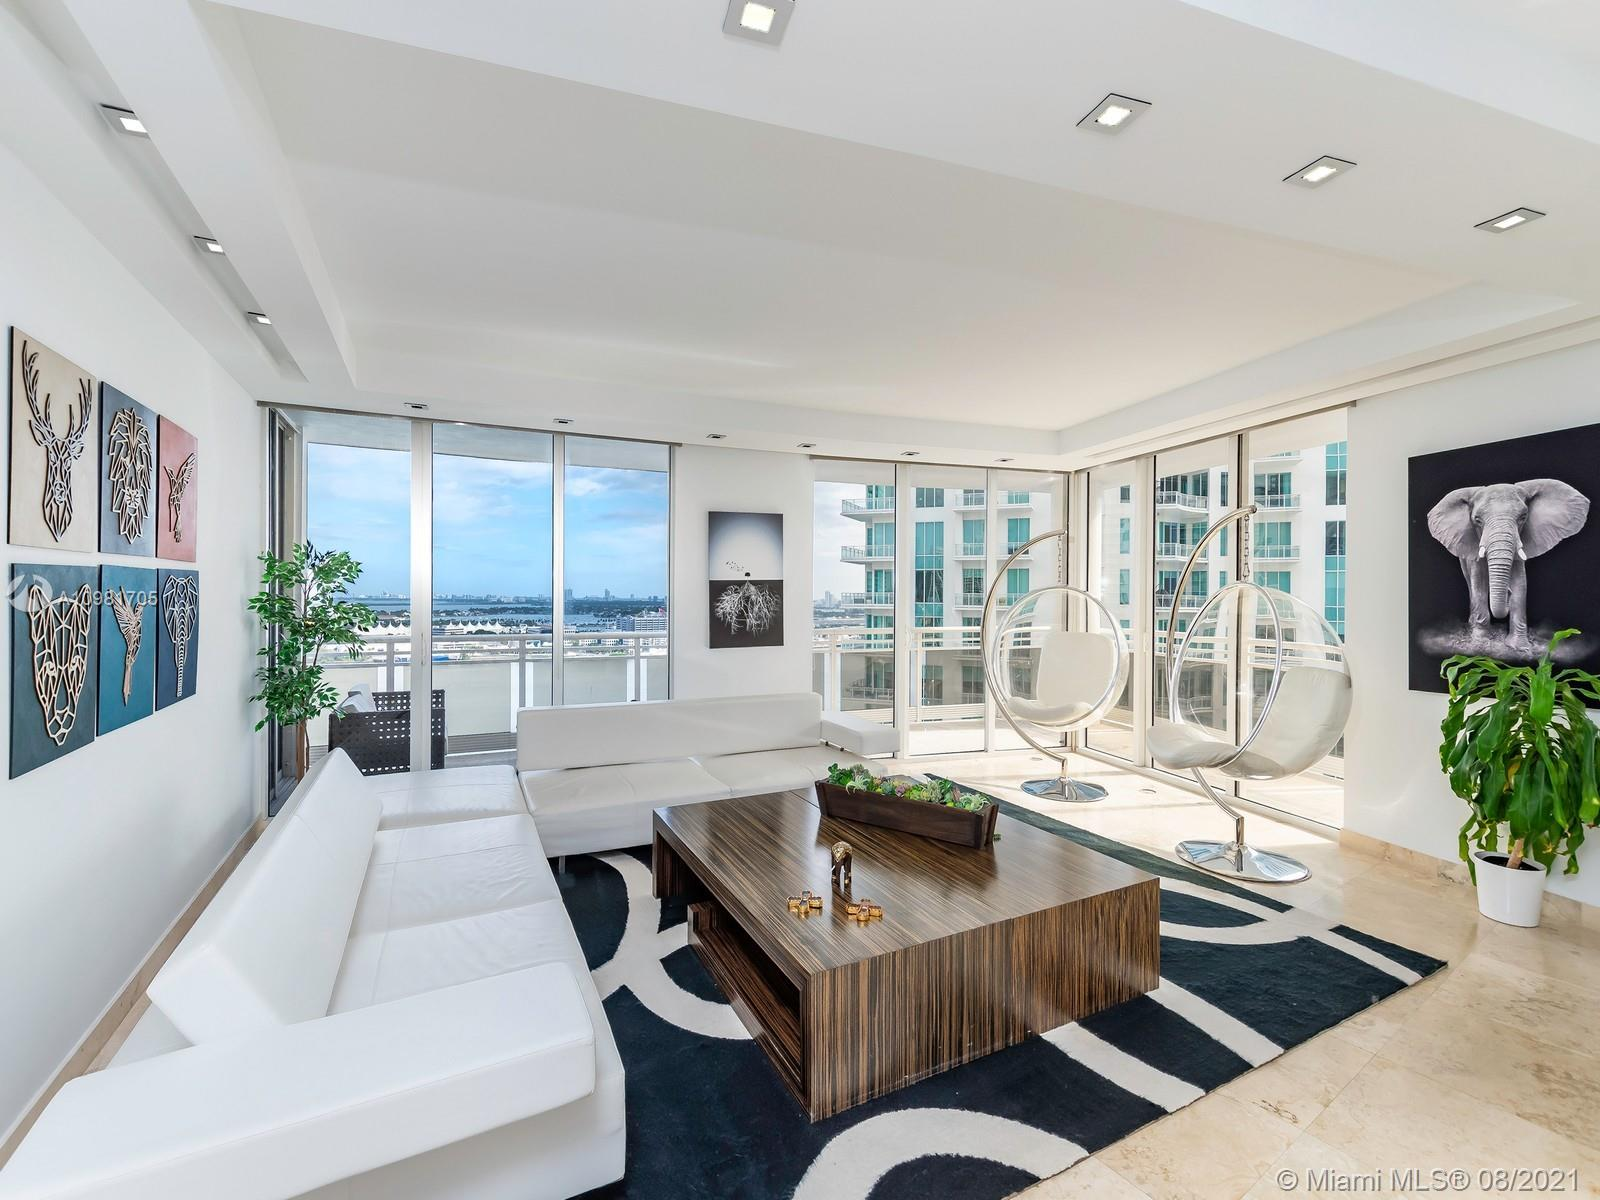 Enjoy your own Private Oasis in this Lower PH of Carbonell located in Brickell Key, stay in the heart of Miami while enjoying all the serenity of a gated island community. This spacious 2,860 lower PH features 4 spacious bedrooms all with their own ensuite bathrooms and closets. Offering the ideal floorplan for a family, this unit is built for entertaining with a large family room, formal dining room, enjoy panoramic views of the Ocean, Brickell and Downtown, from every room.  Also equipped with a large kitchen with miele appliances, updated baths and separate laundry room. Carbonell features  5 star amenities including two tennis courts, 2 story gym, basketball, racquetball, sauna, heated, swimming pool, concierge, free valet, recently renovated common areas.